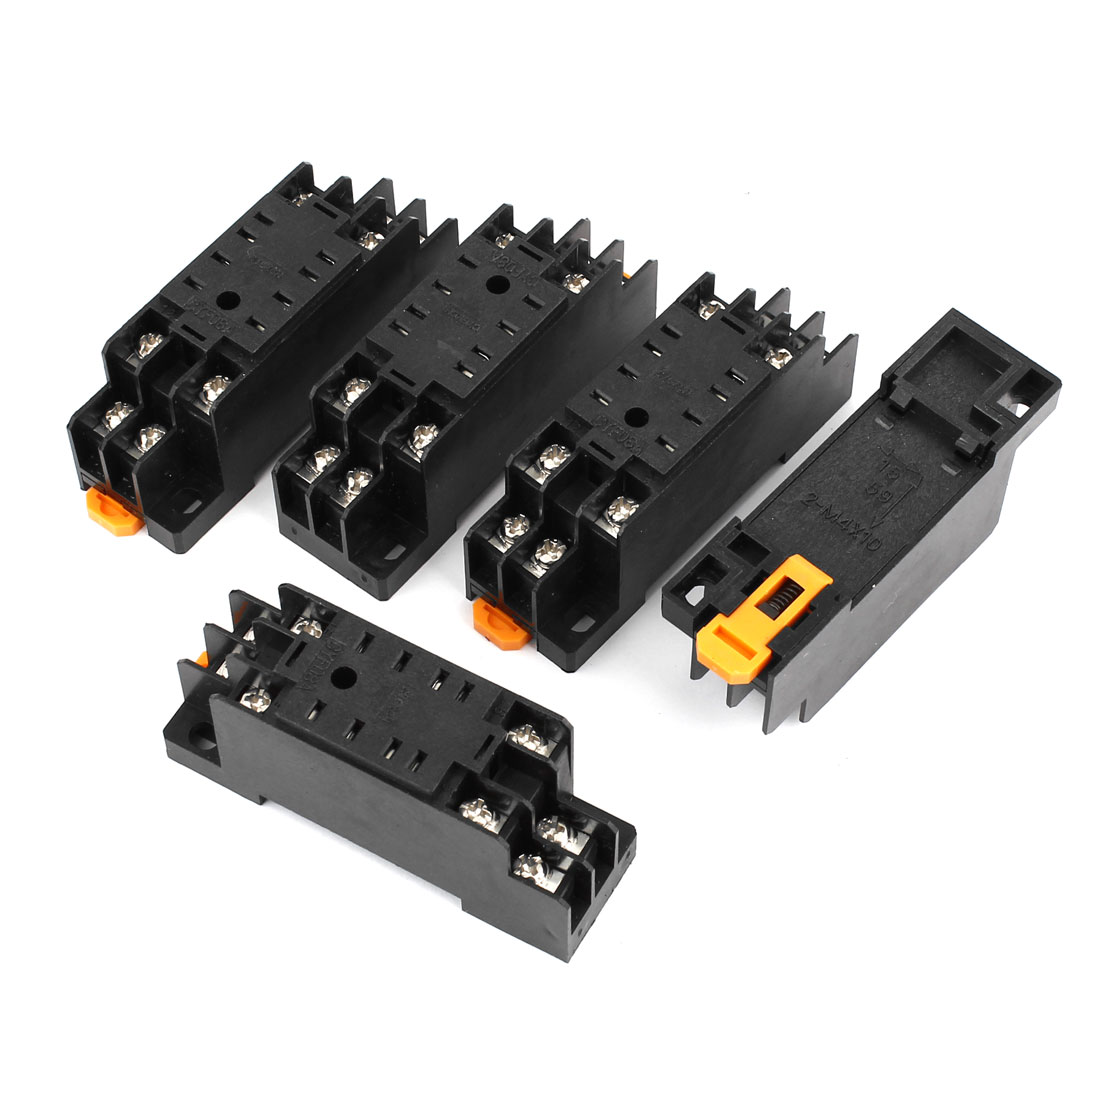 5pcs PF083A 8 Pins Screw Terminals Power Relay Socket Base for JTX-2C MK2P-I